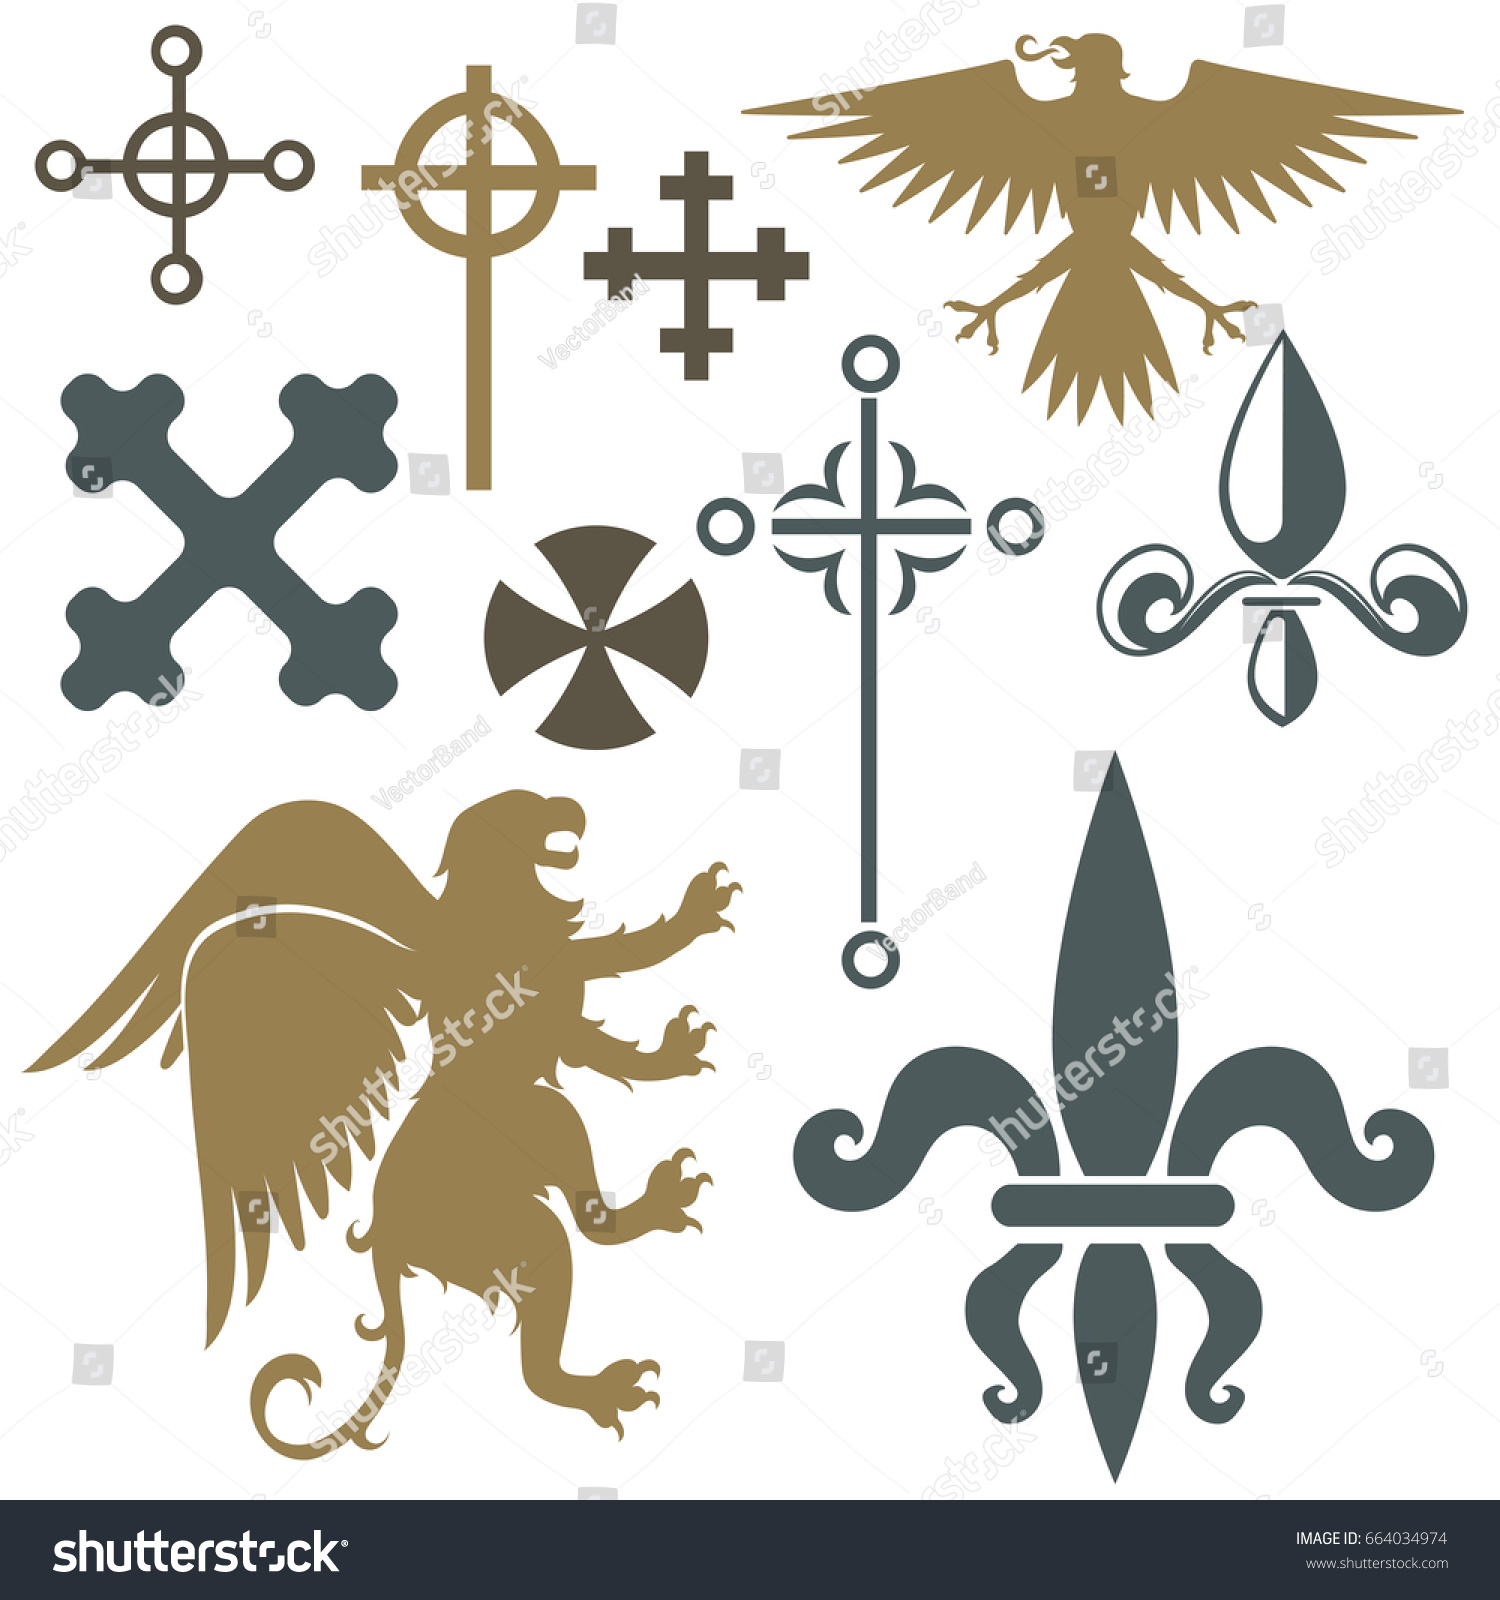 Heraldic Royal Crest Medieval Knight Elements Stock Vector Royalty